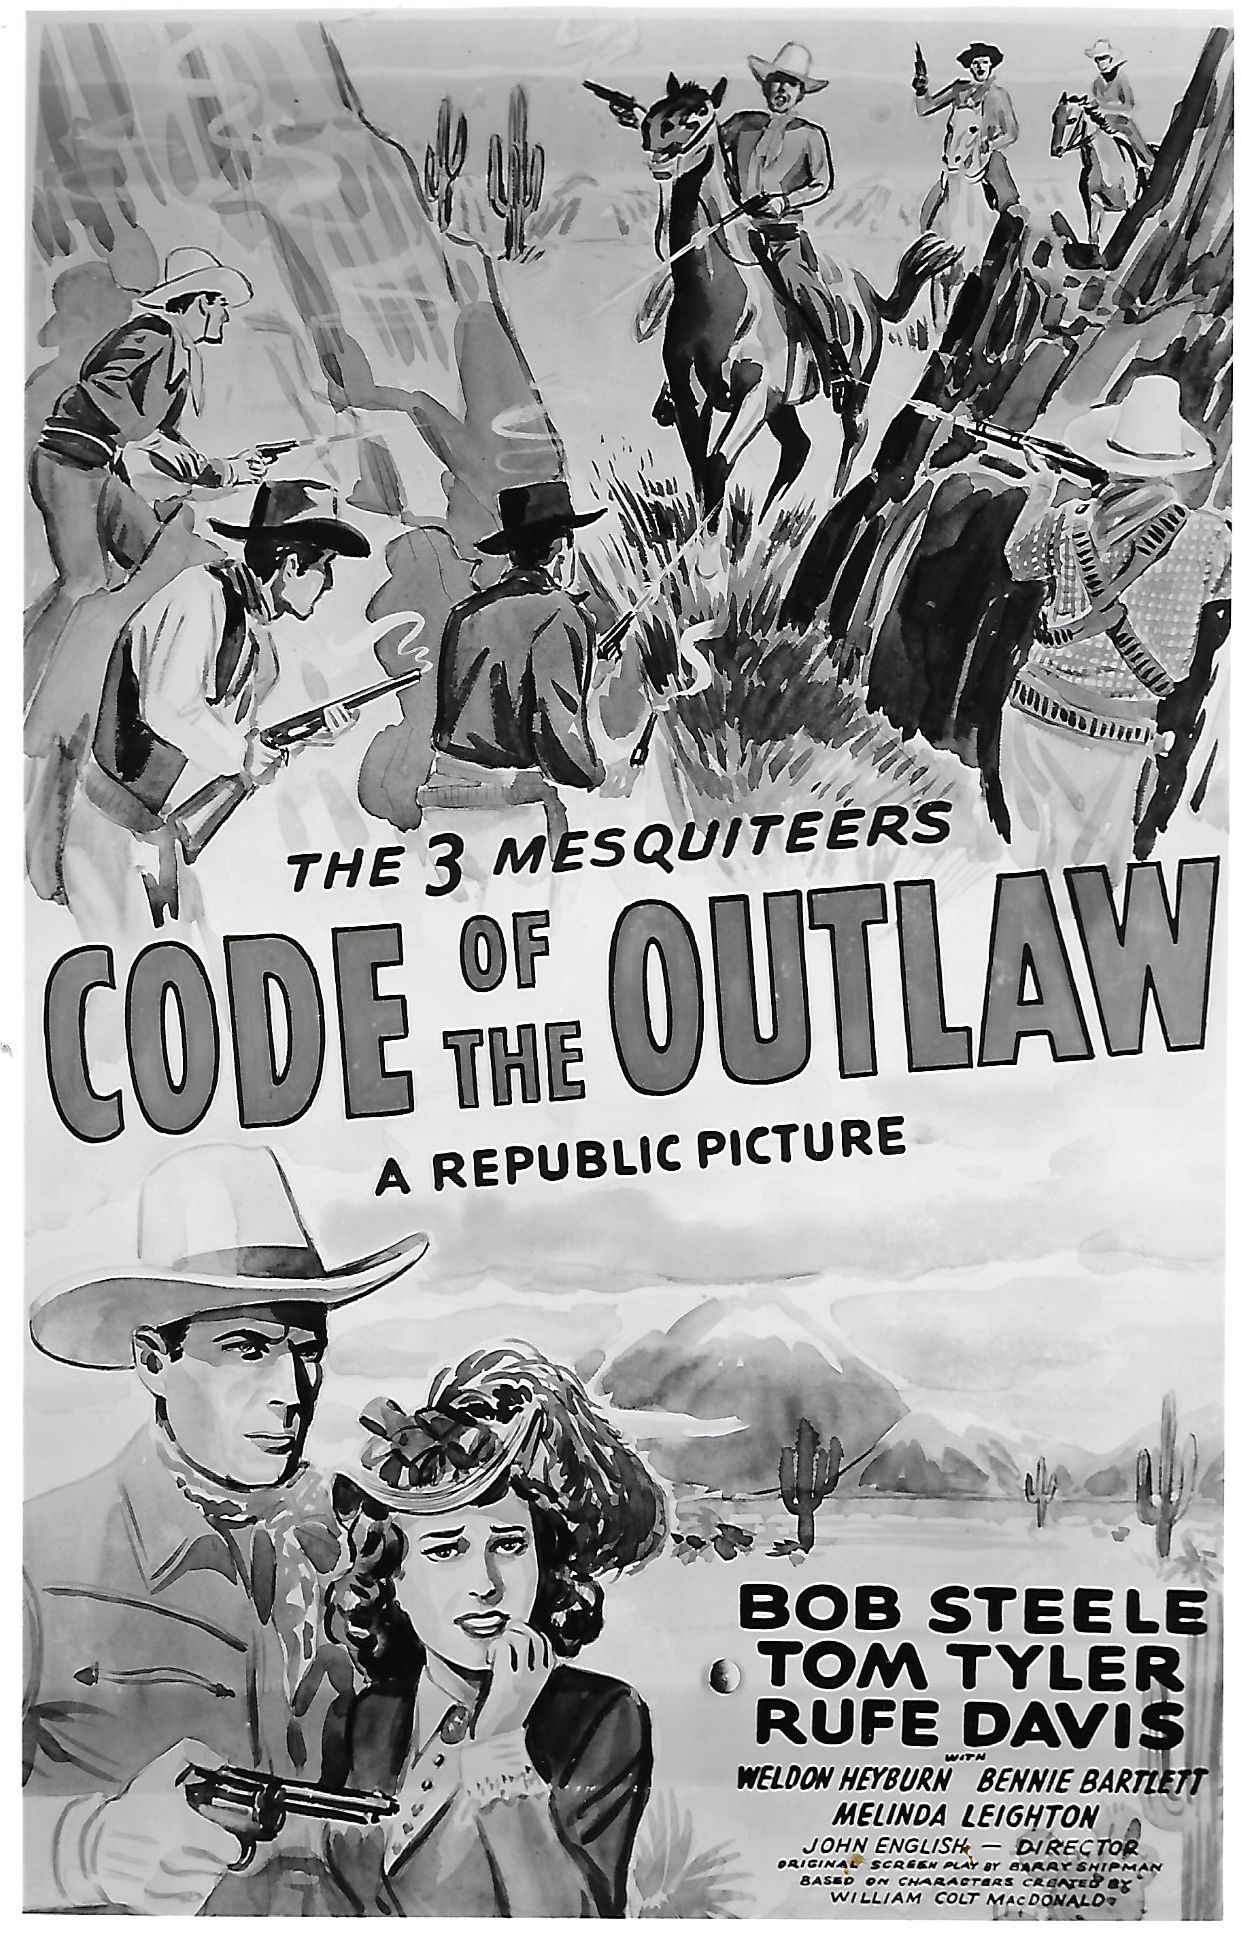 Linda Leighton and Tom Tyler in Code of the Outlaw (1942)